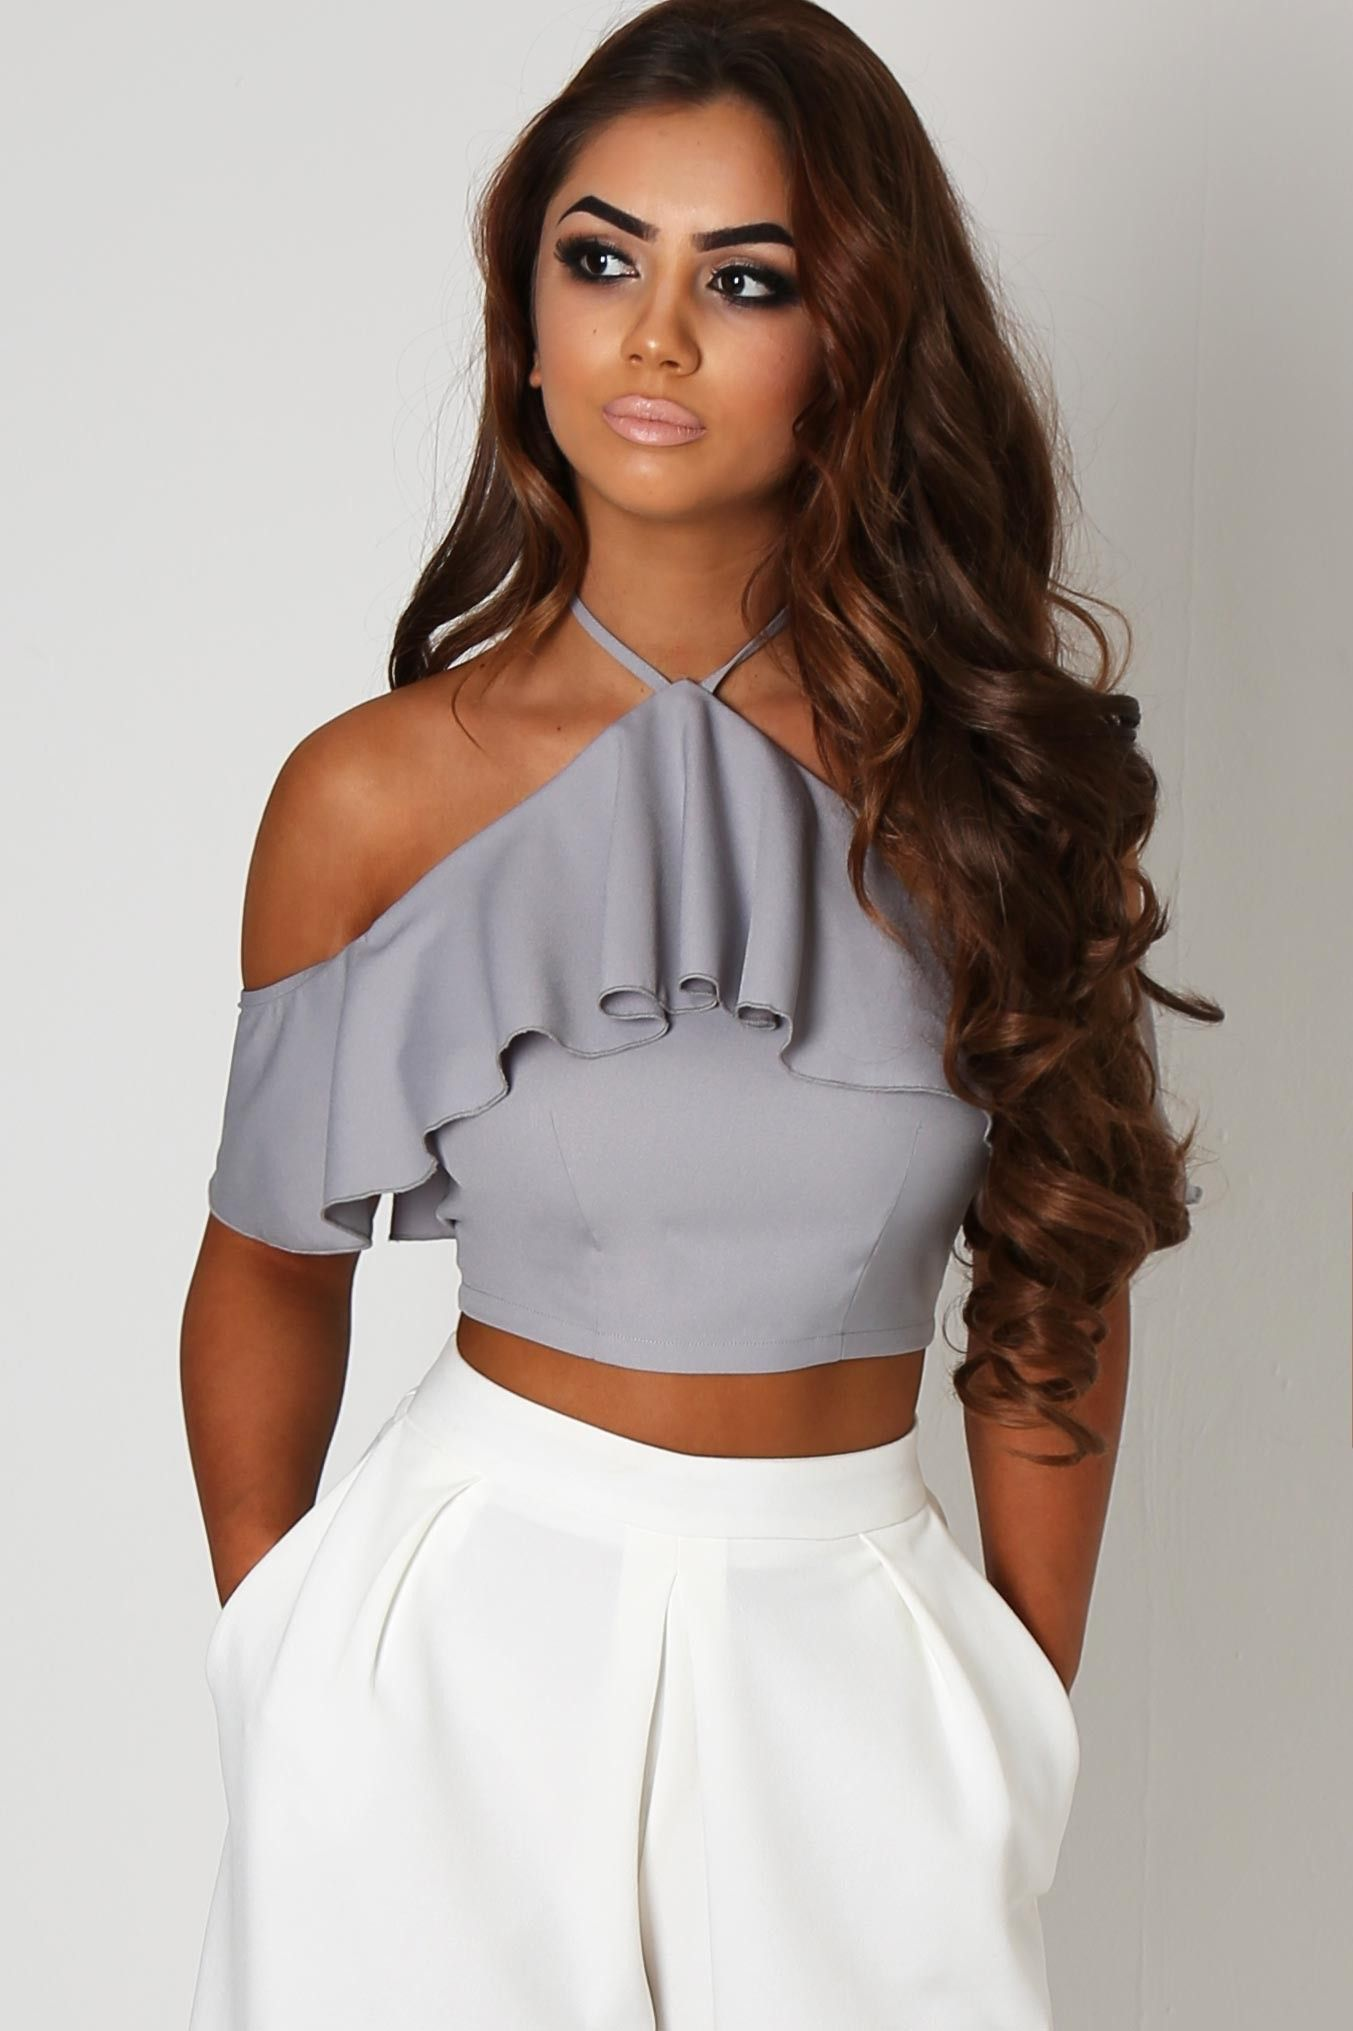 59abf931ce0 Look gorgeous in grey in this amazing crop top! Featuring frill detail and  in a bardot style, this grey top will look gorge dressed up with culottes  or ...